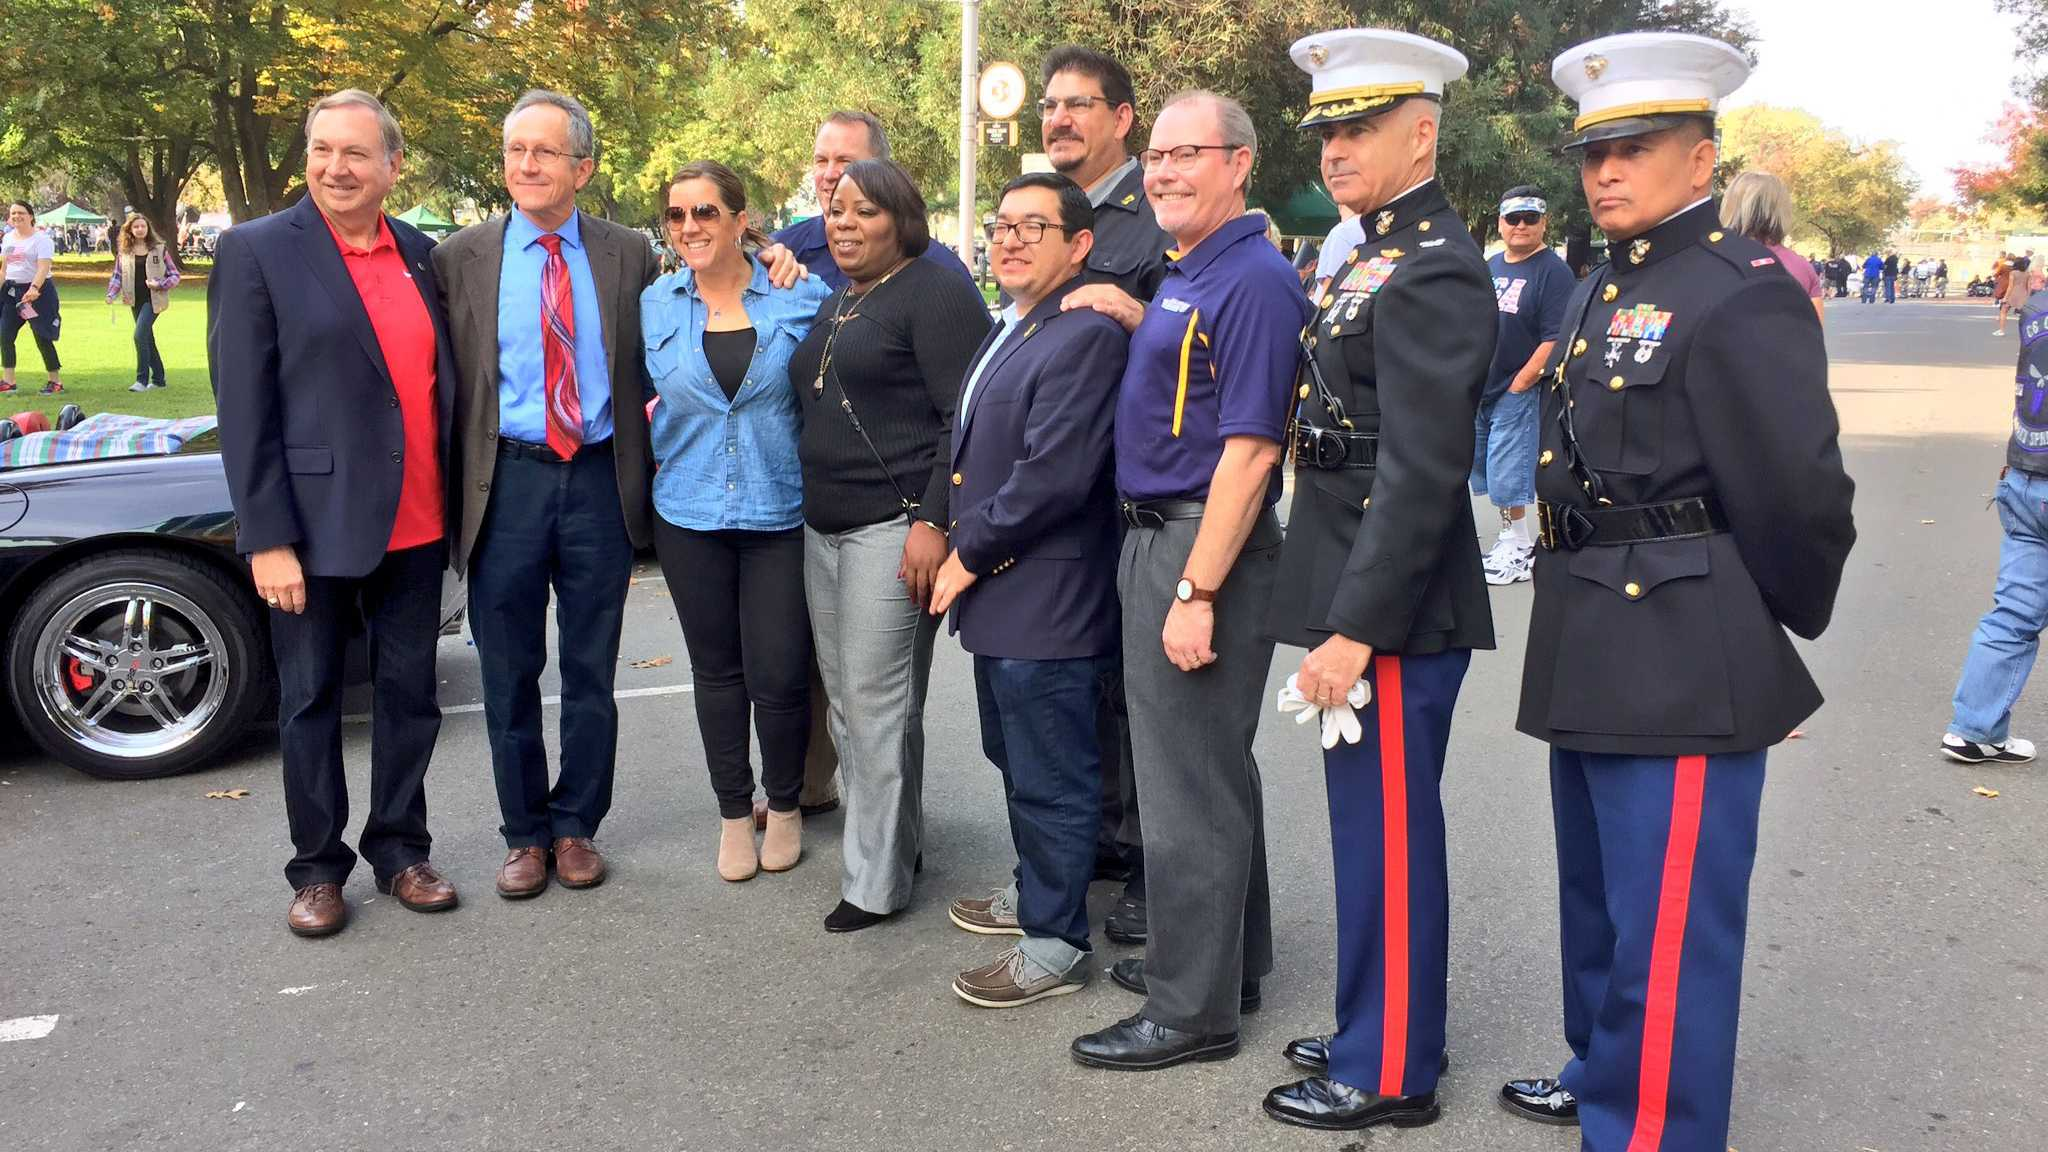 Navy Veteran Dr. Nicole Clavo, who lost her son JJ to gun violence last year, served as the Sacramento Veterans Day Parade Grand Marshall on Friday, Nov. 11, 2016.